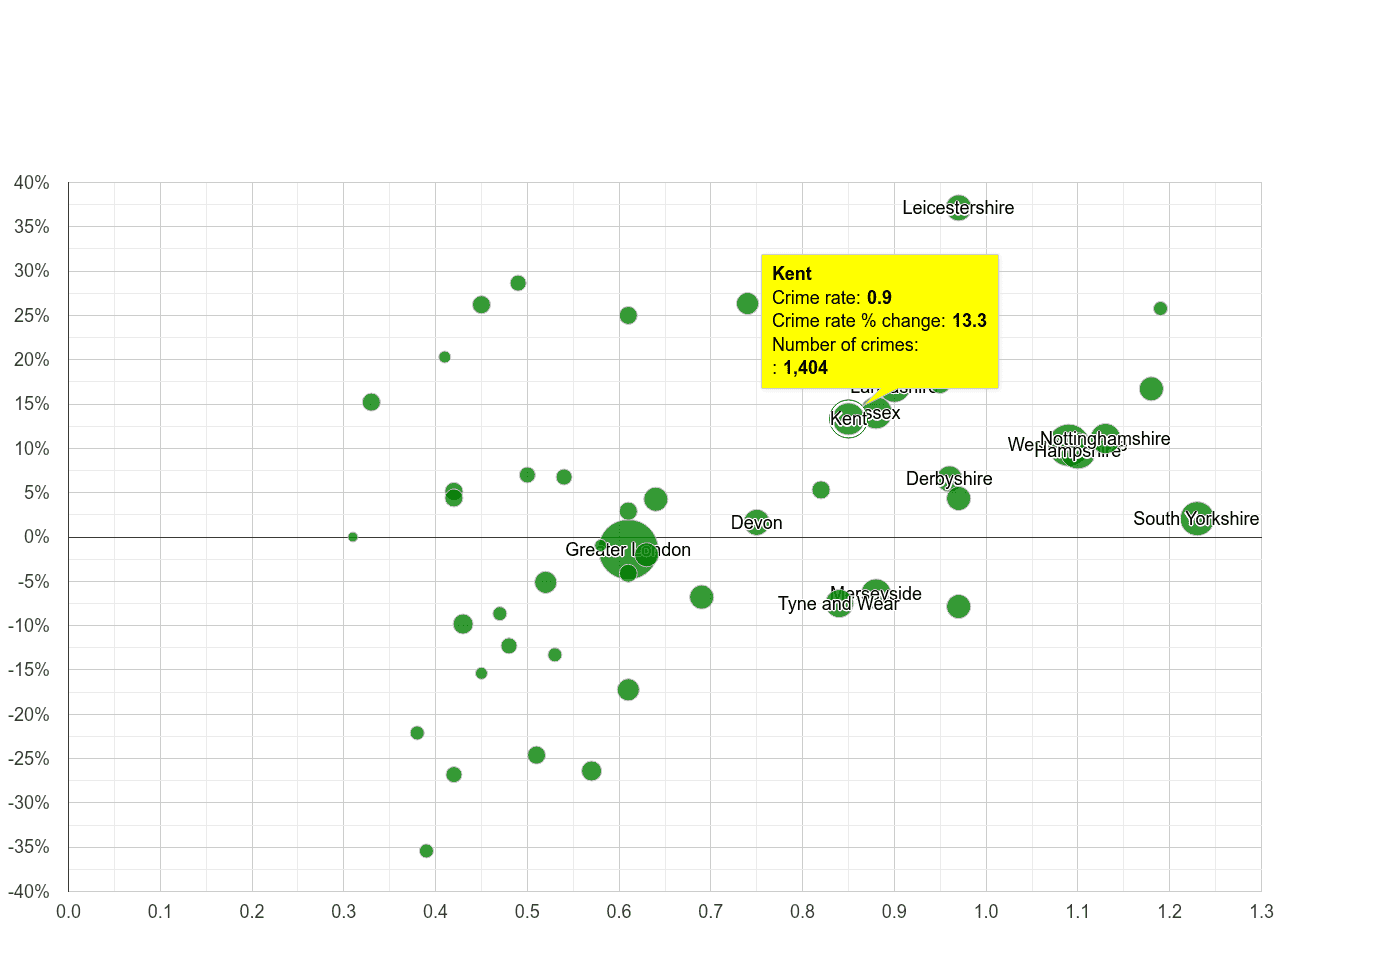 Kent possession of weapons crime rate compared to other counties